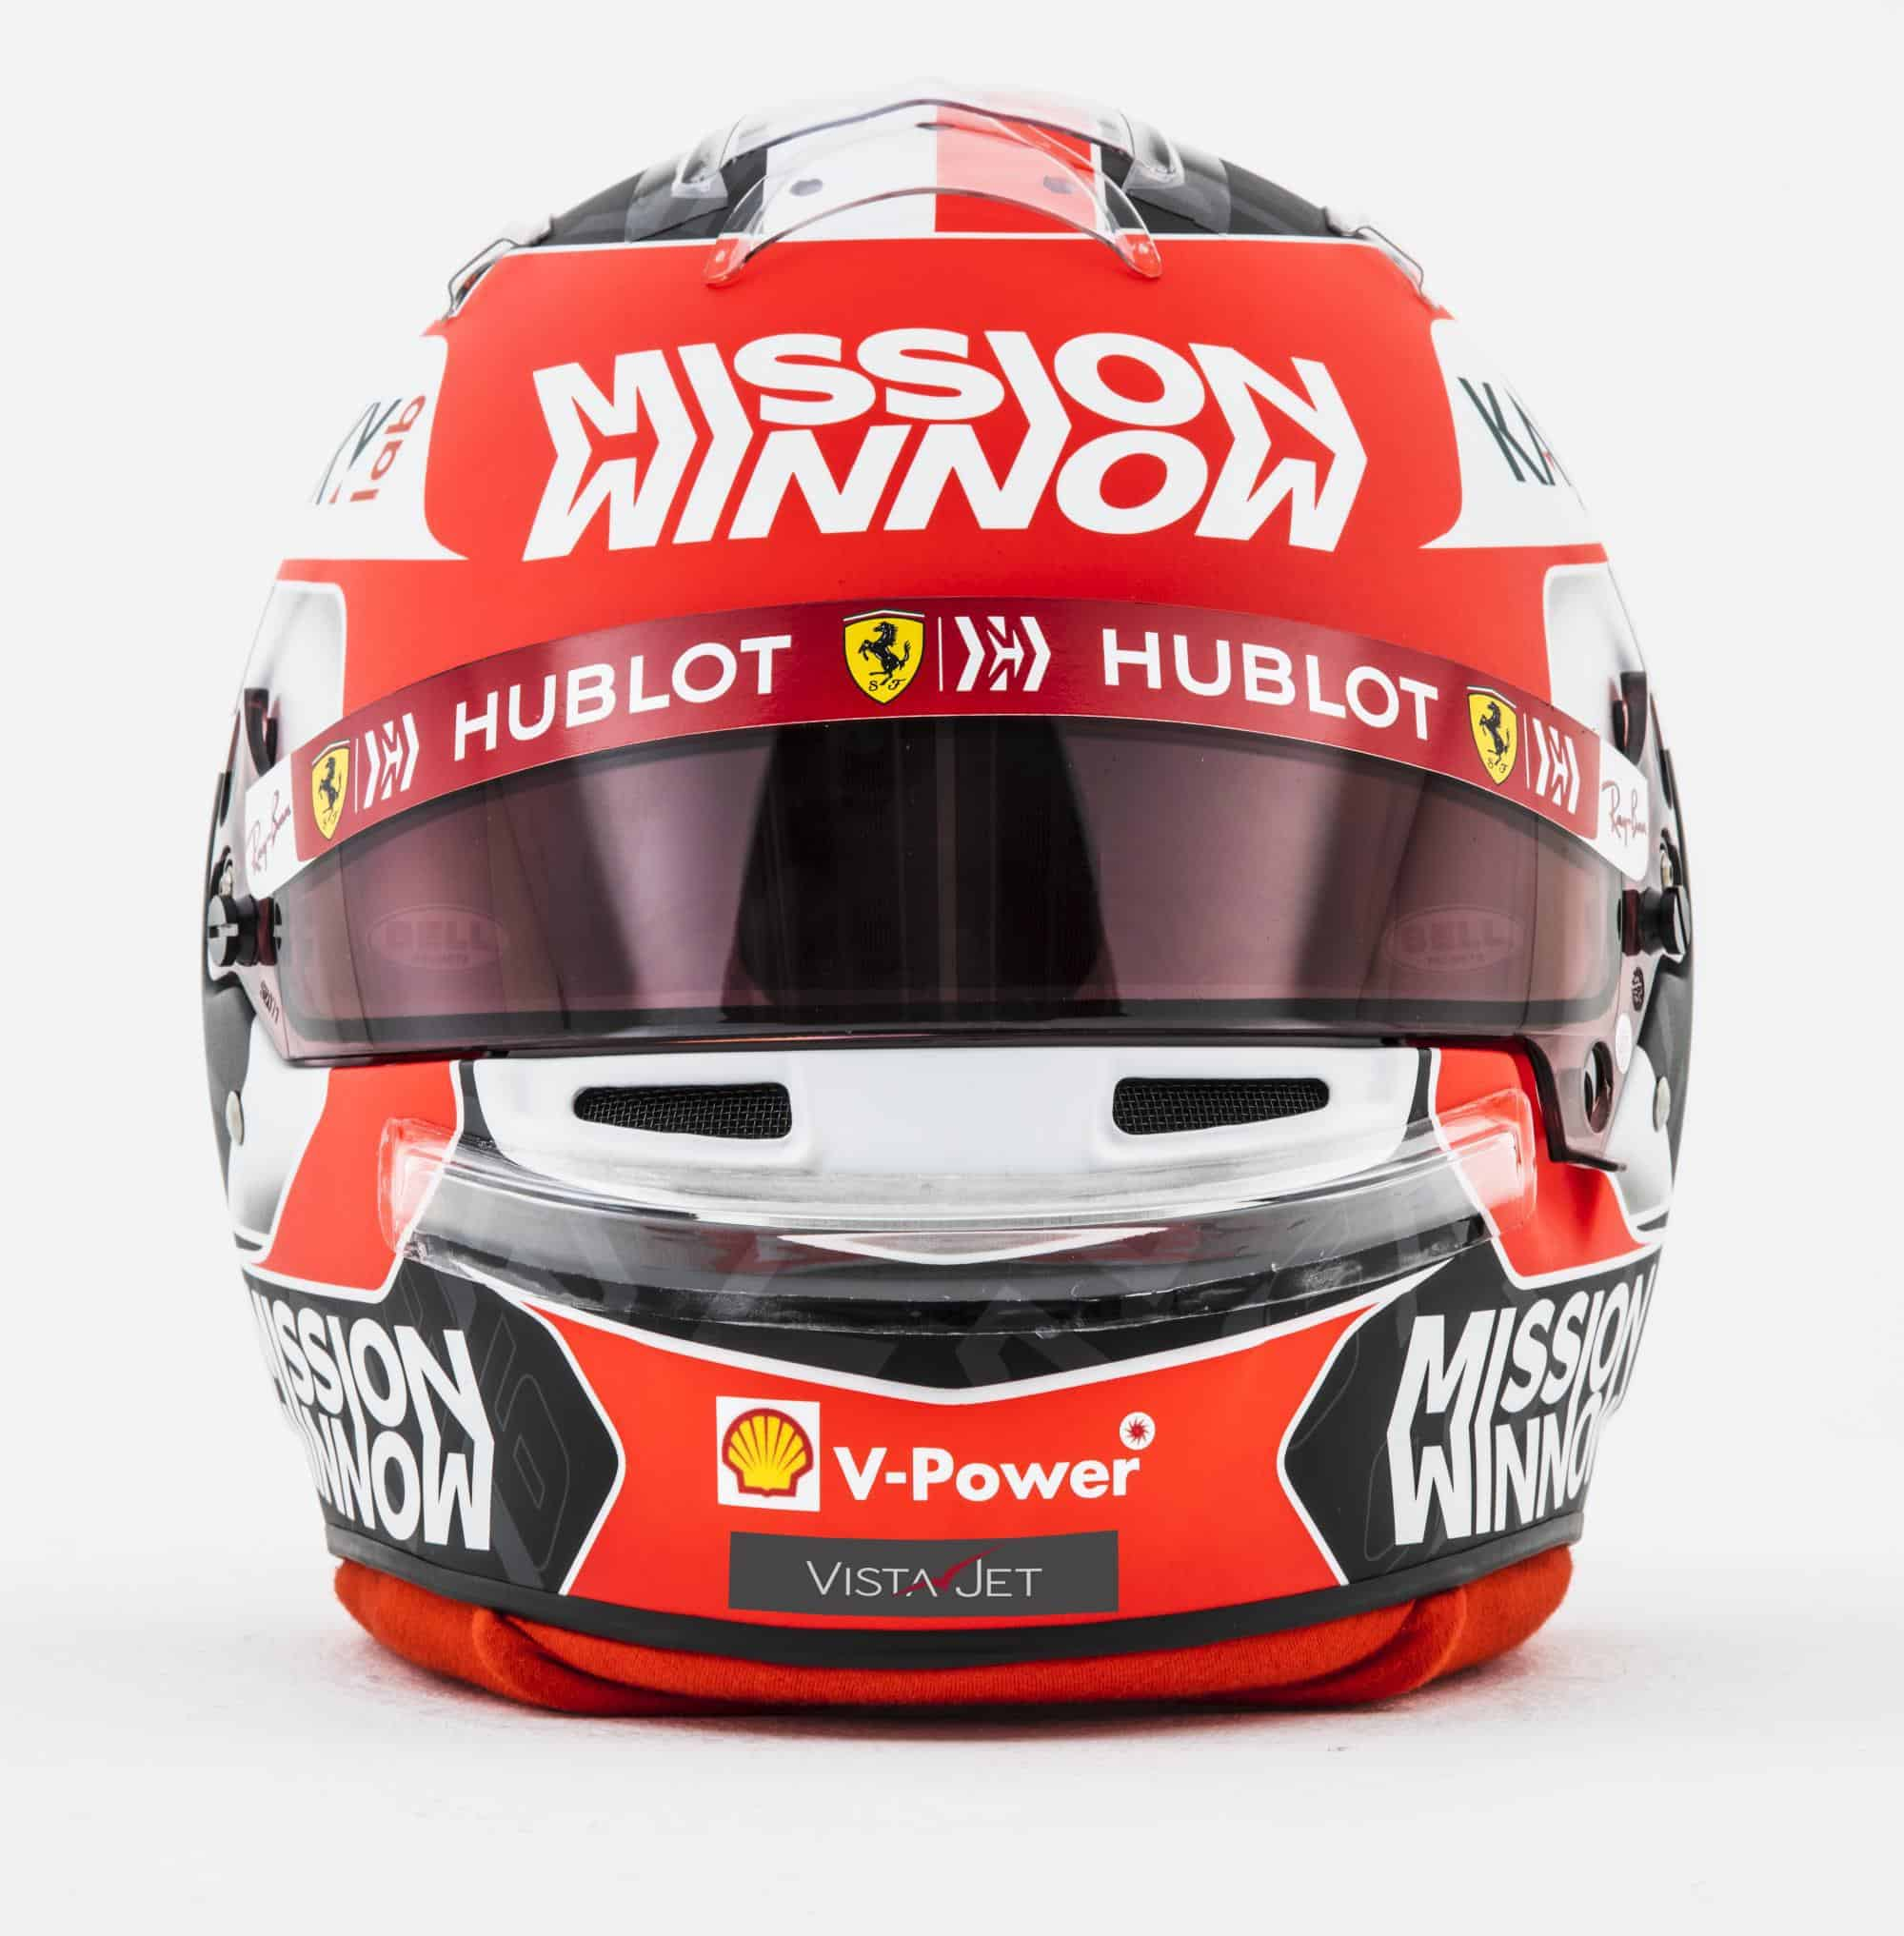 2019 F1 Charles Leclerc Ferrari helmet front Photo Ferrari Edited by MAXF1net